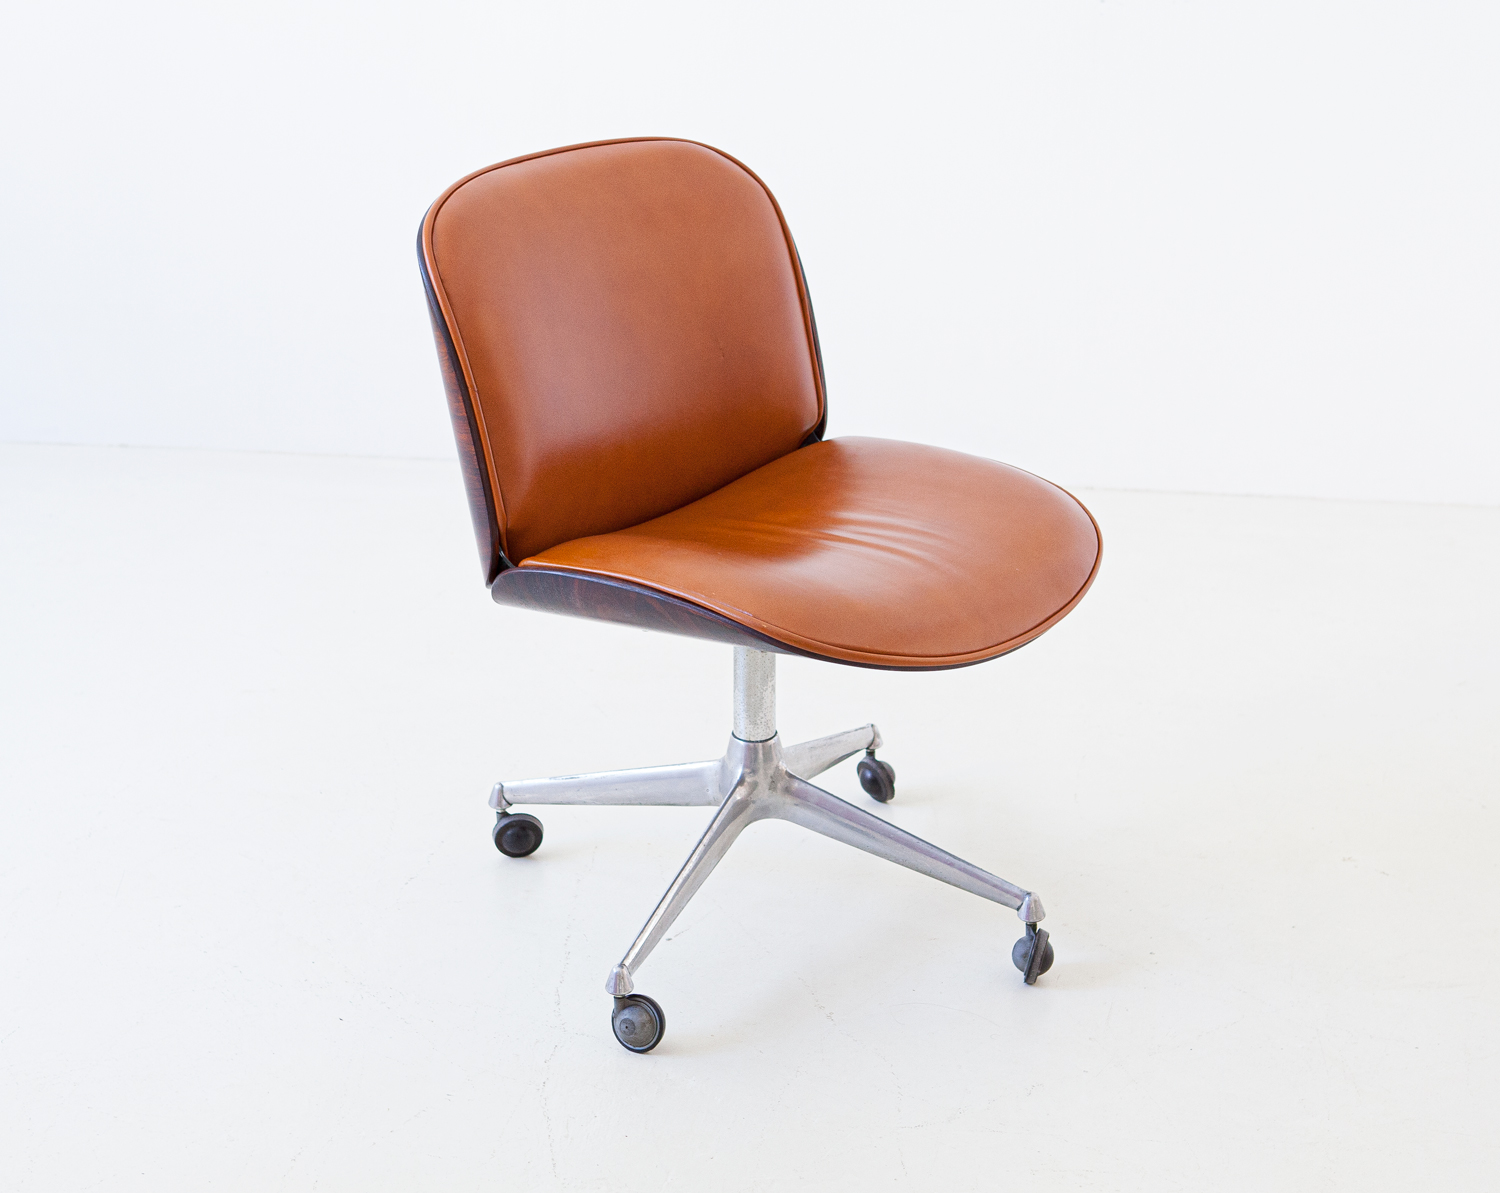 1950s-rosewood-and-cognac-leather-swivel-chair-by-ico-parisi-for-mim-2-se328a